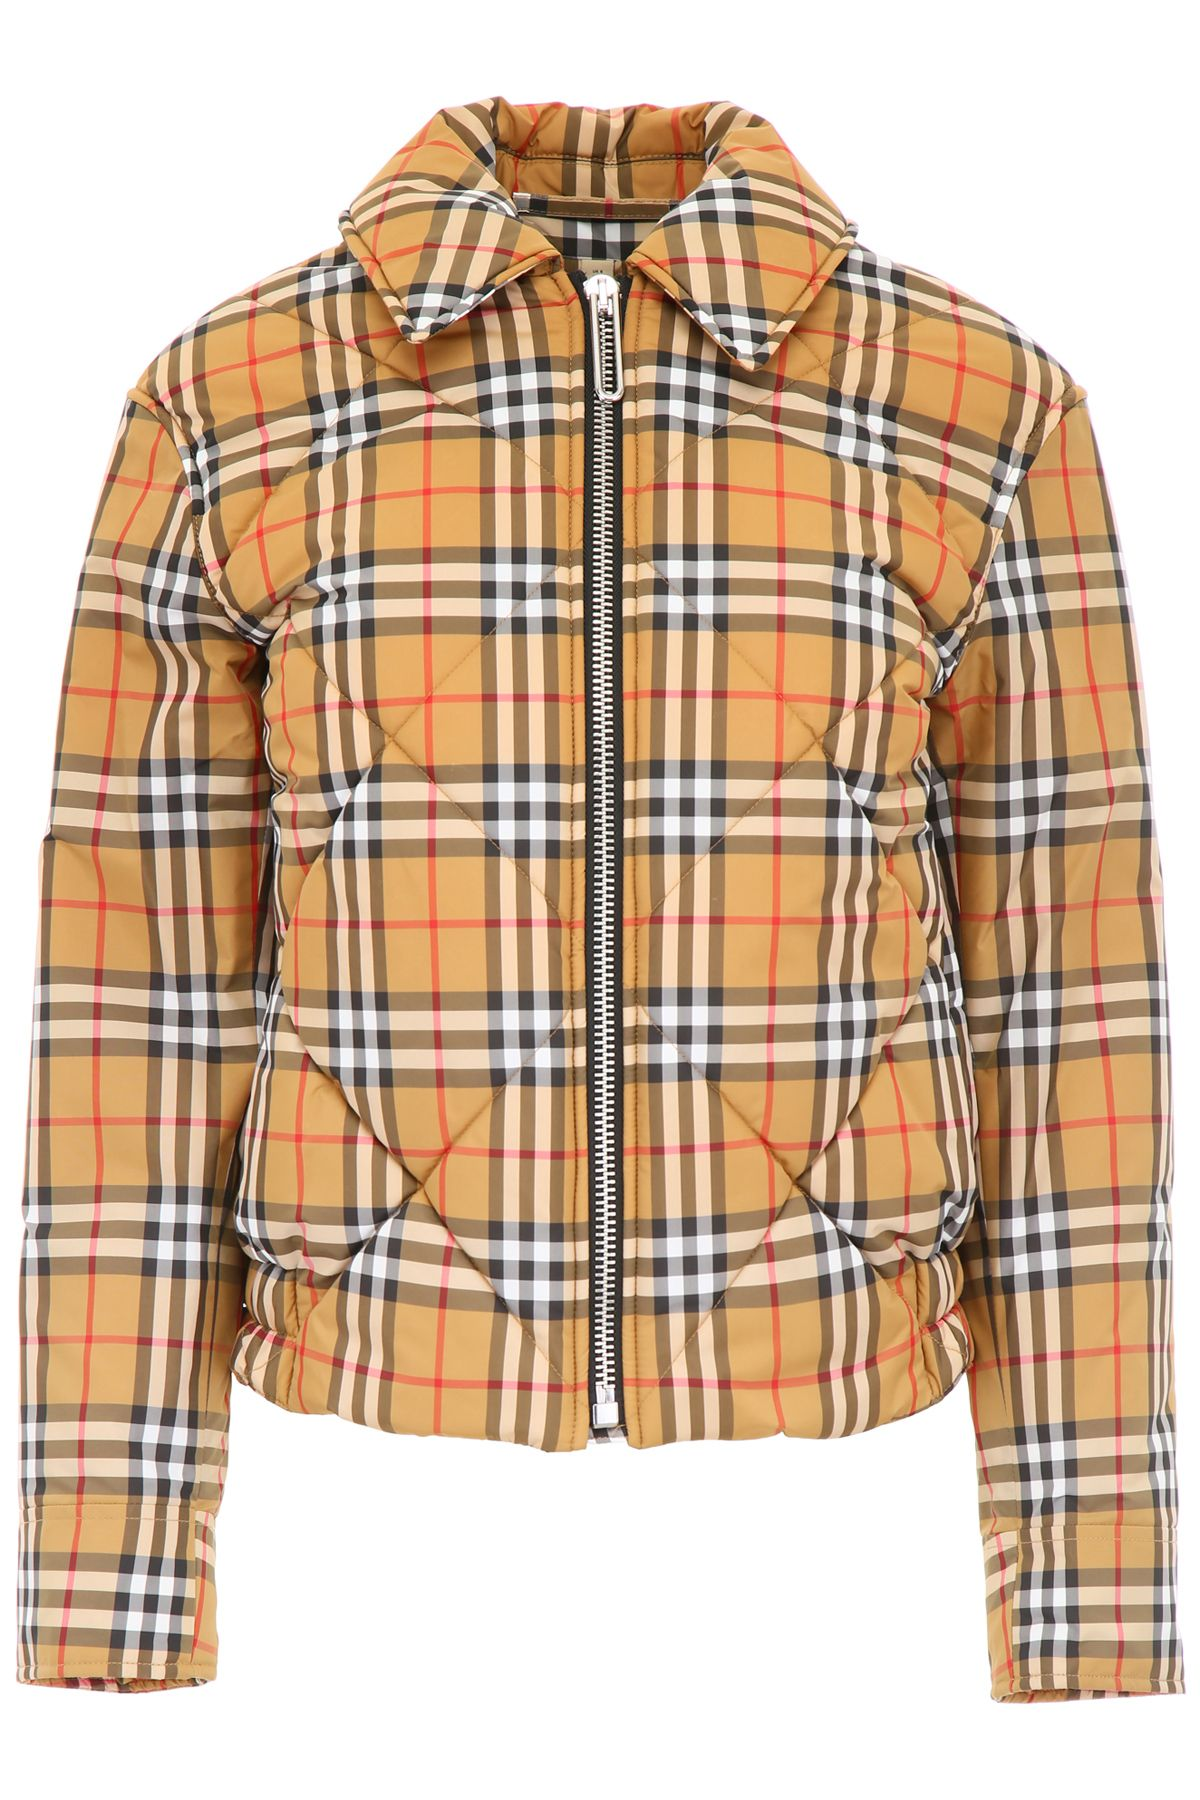 burberry clothing women check puffer jacket